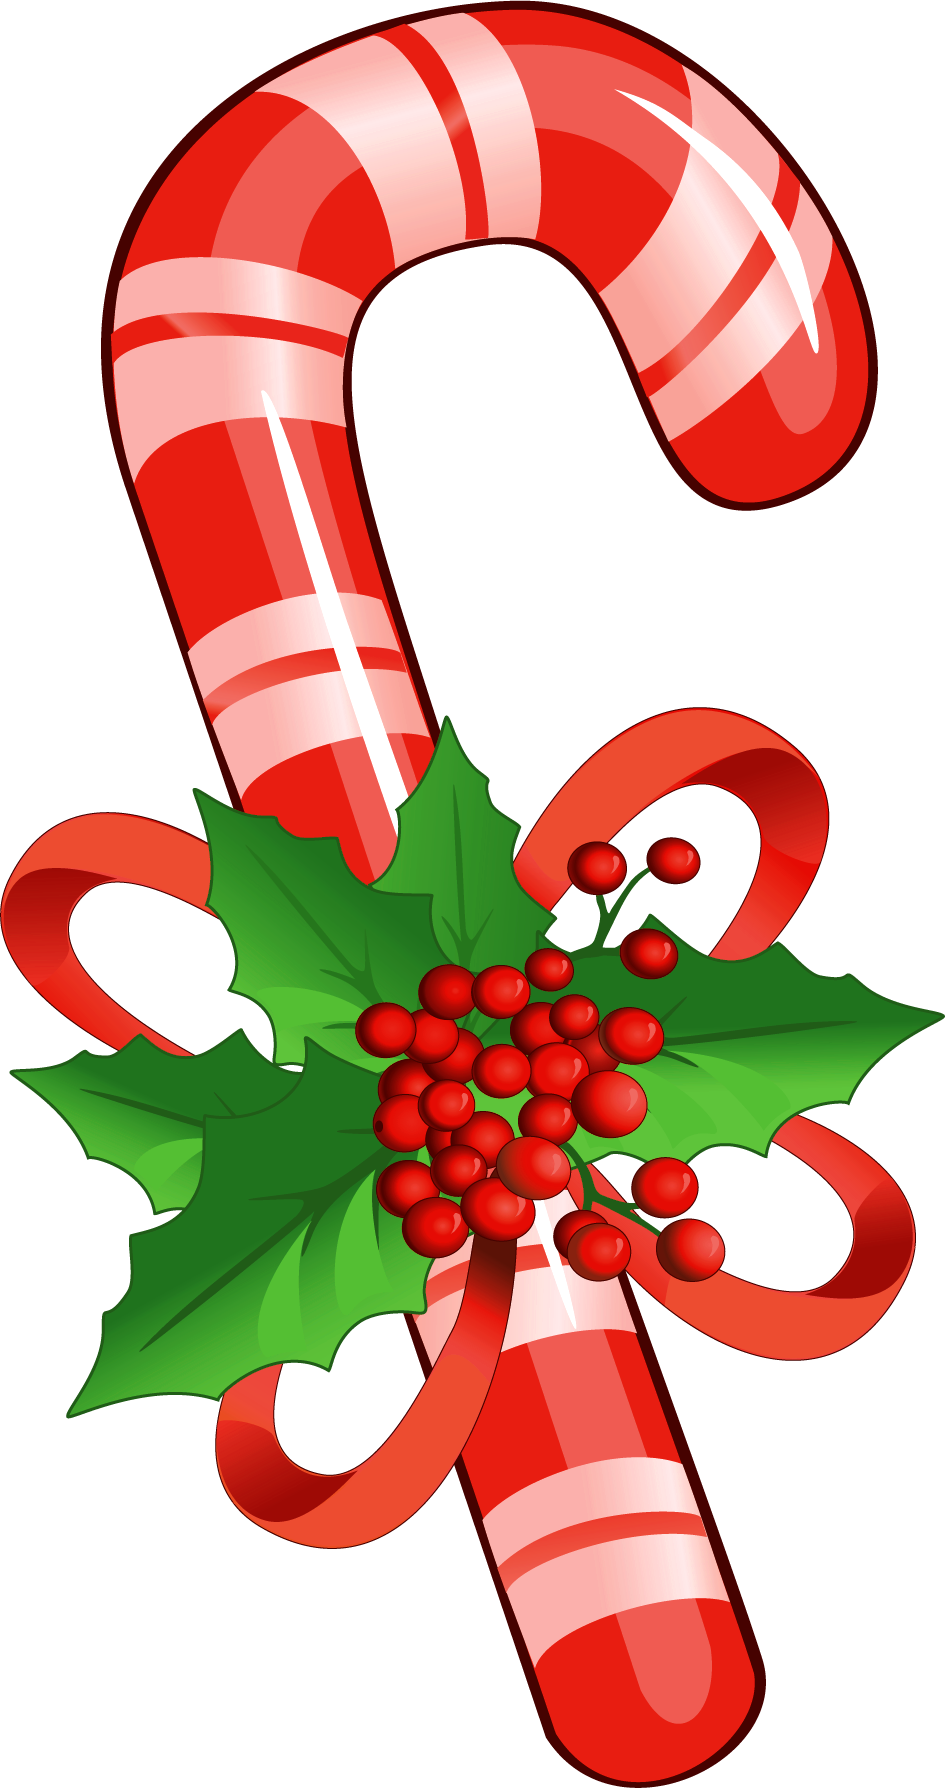 945x1788 Candy Cane Clipart Transparent Background